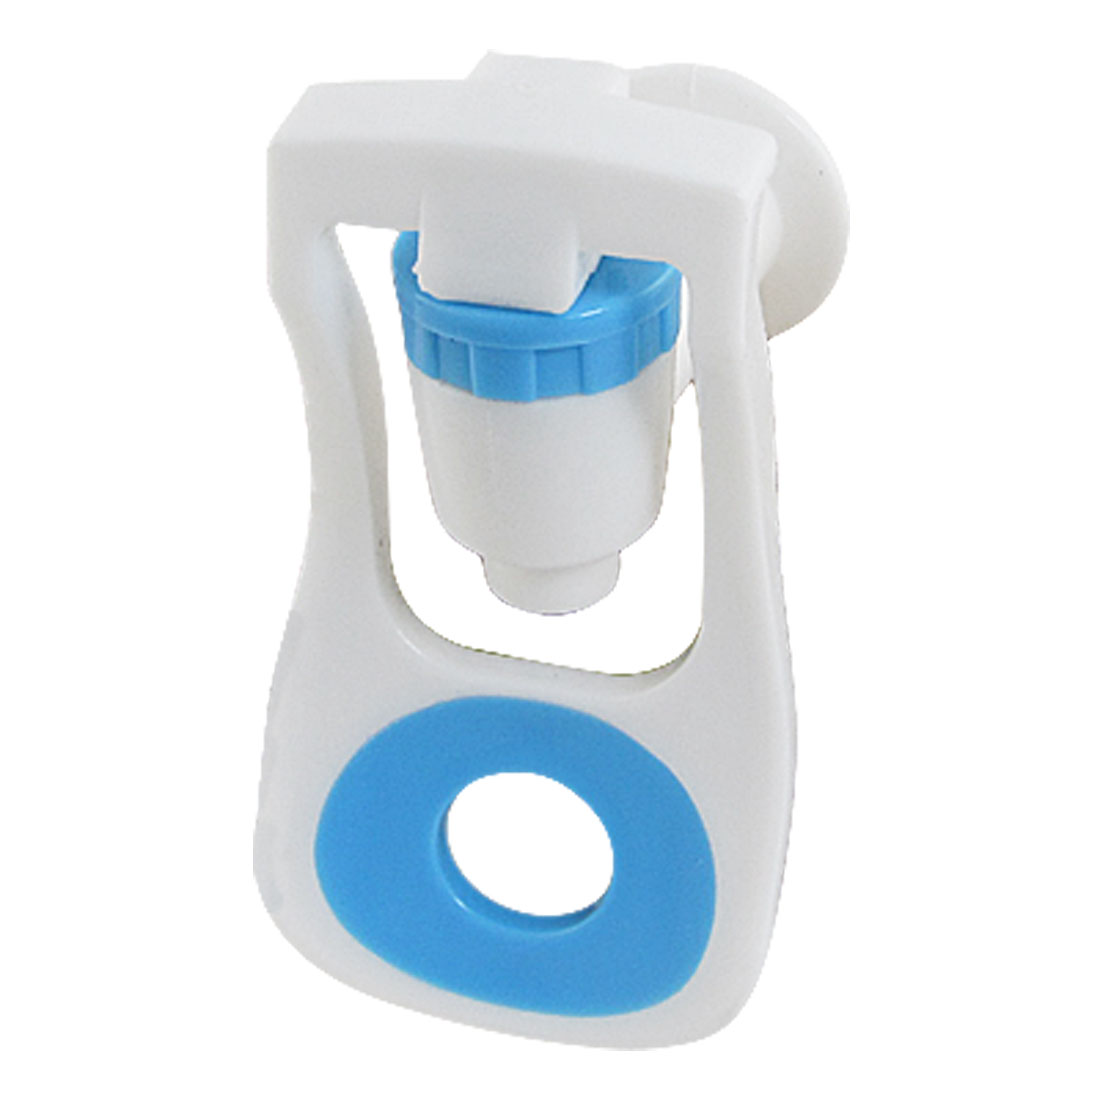 Handle Push Type White Blue Plastic Water Dispenser Tap Opnpq - image 1 of 1